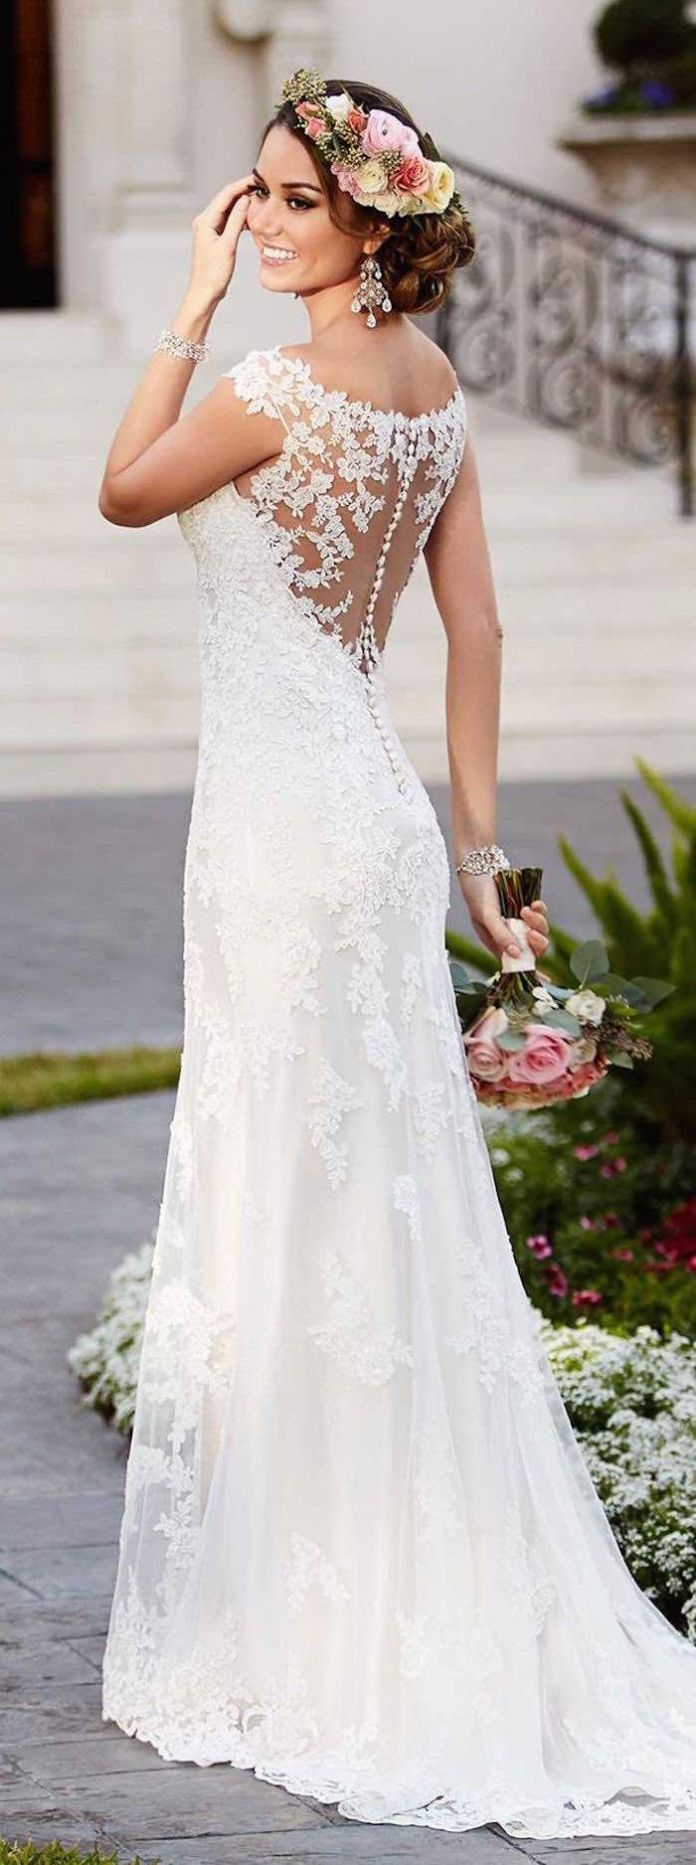 6d1a9253e55a2ad126619693c6efa9e8--lace-wedding-dresses-lace-weddings